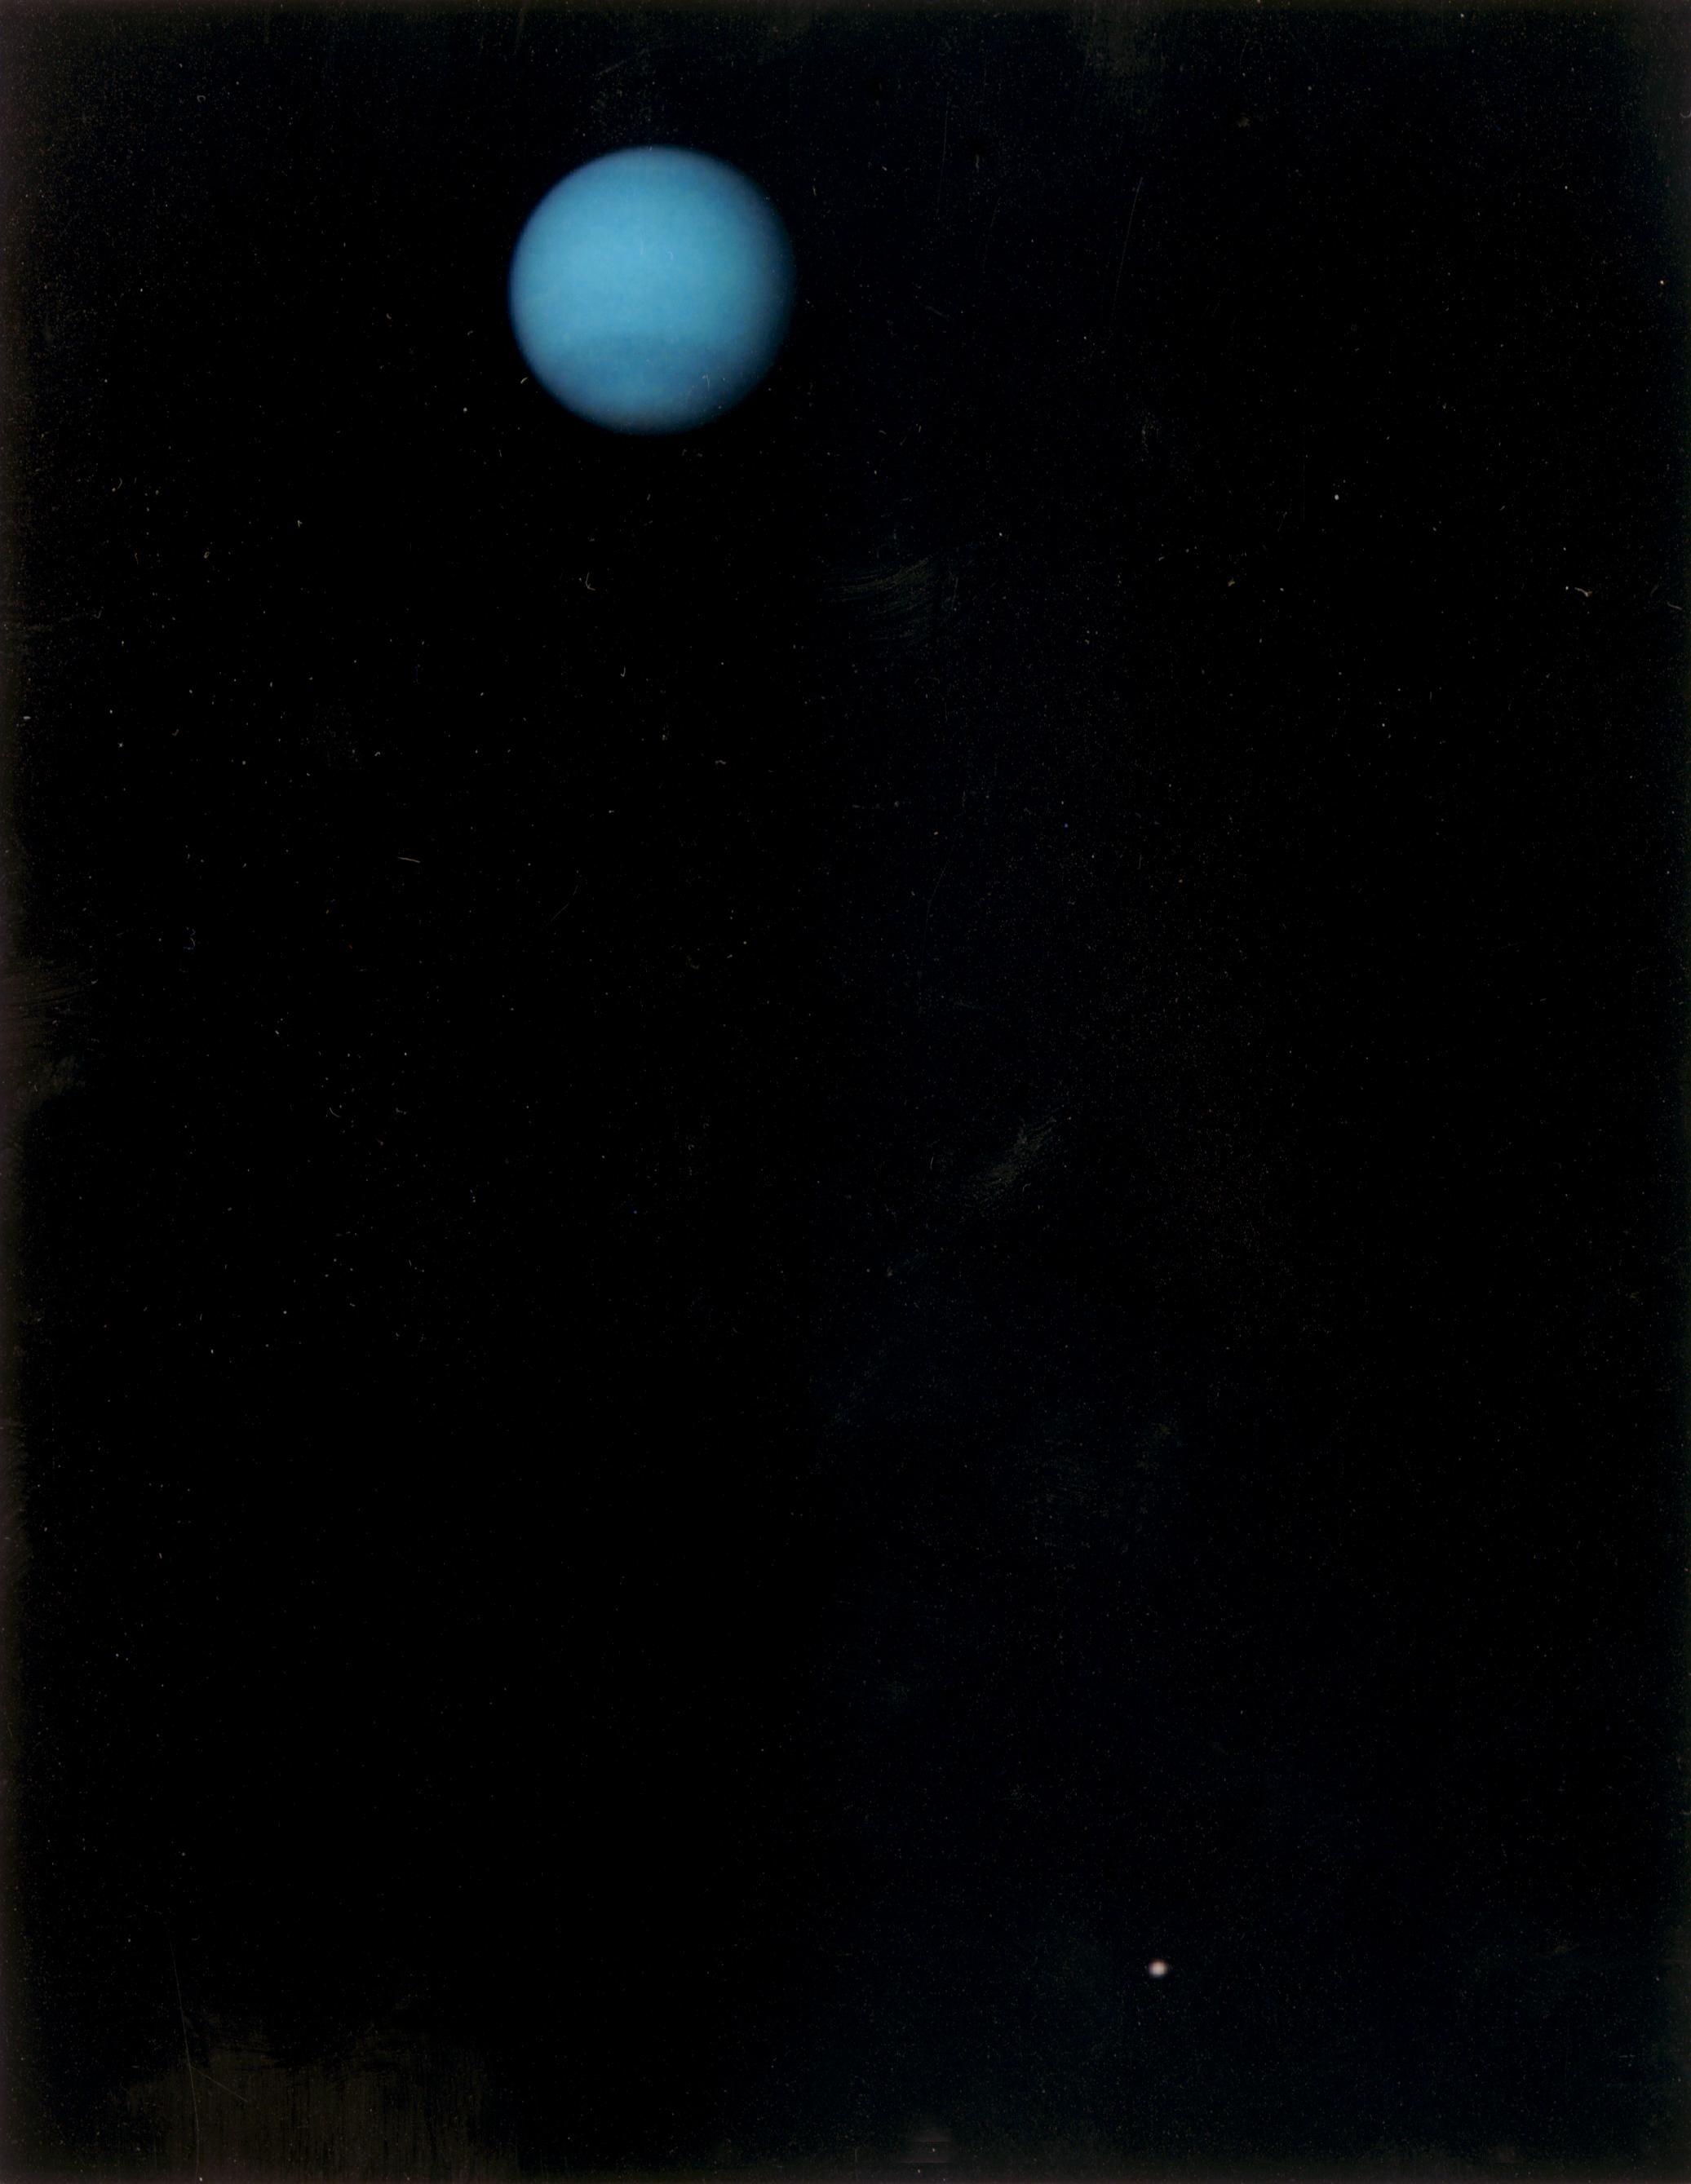 This image was returned by the Voyager 2 spacecraft on July 3, 1989, when it was 76 million kilometers (47 million miles) from Neptune.